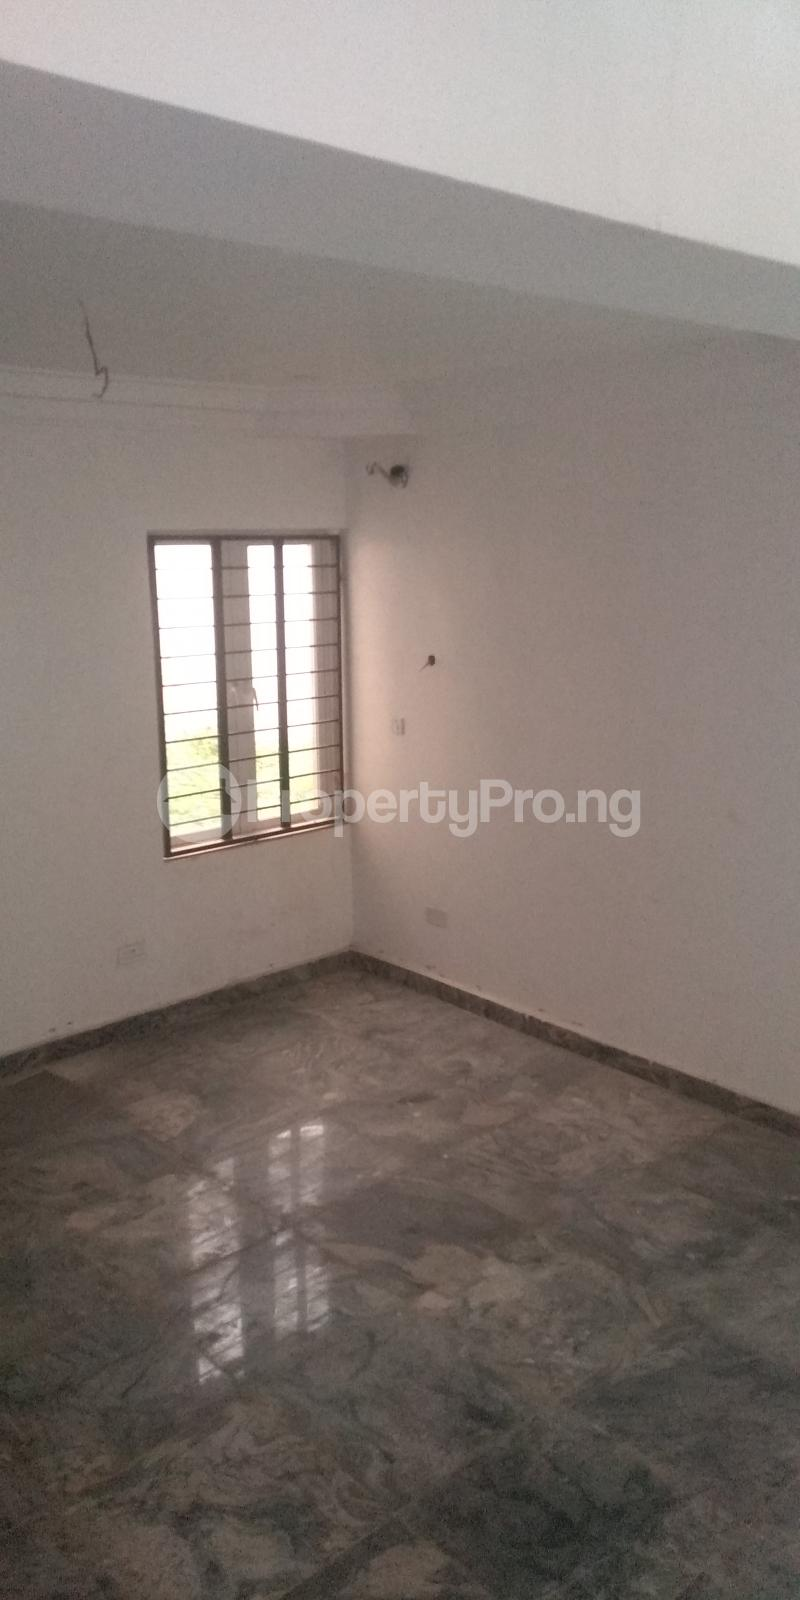 5 bedroom Flat / Apartment for sale Life Camp Abuja - 11